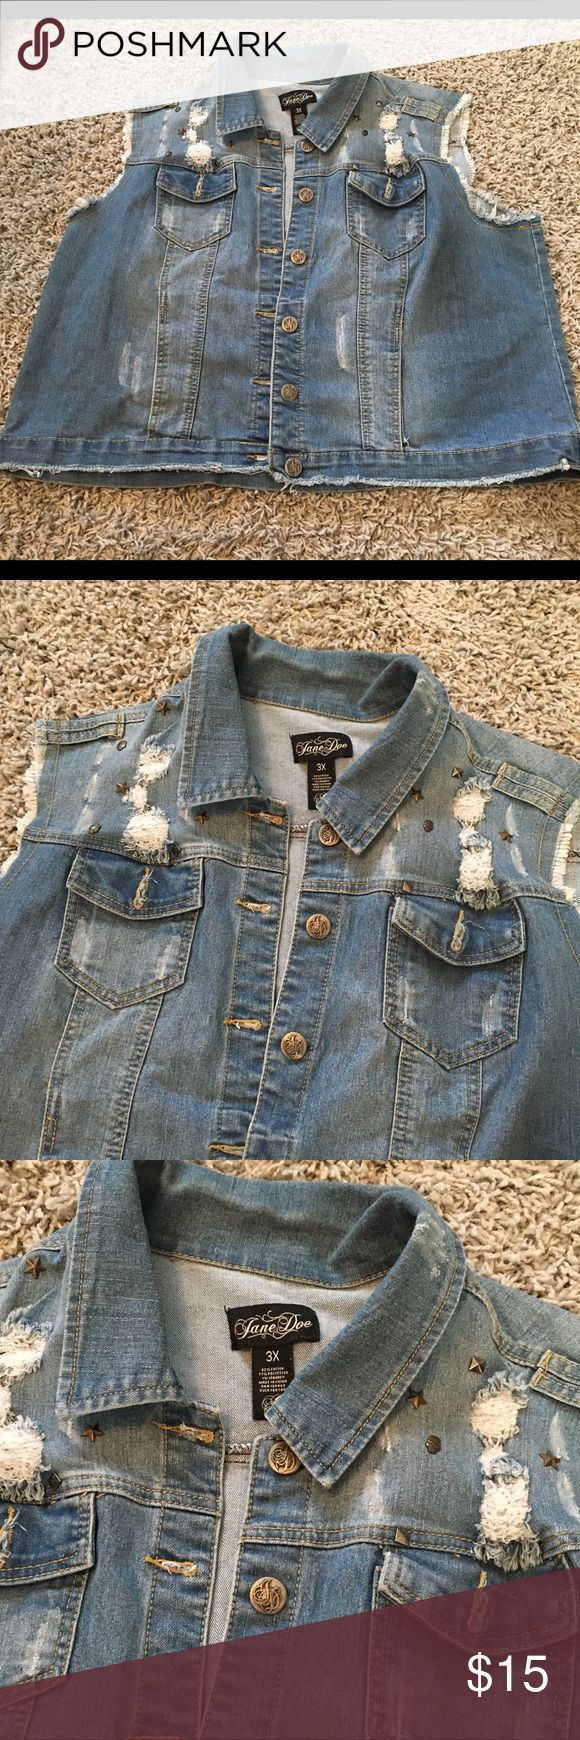 Women's 3xl Sleeveless Jean Jacket by Jane Doe Excellent condition. Other